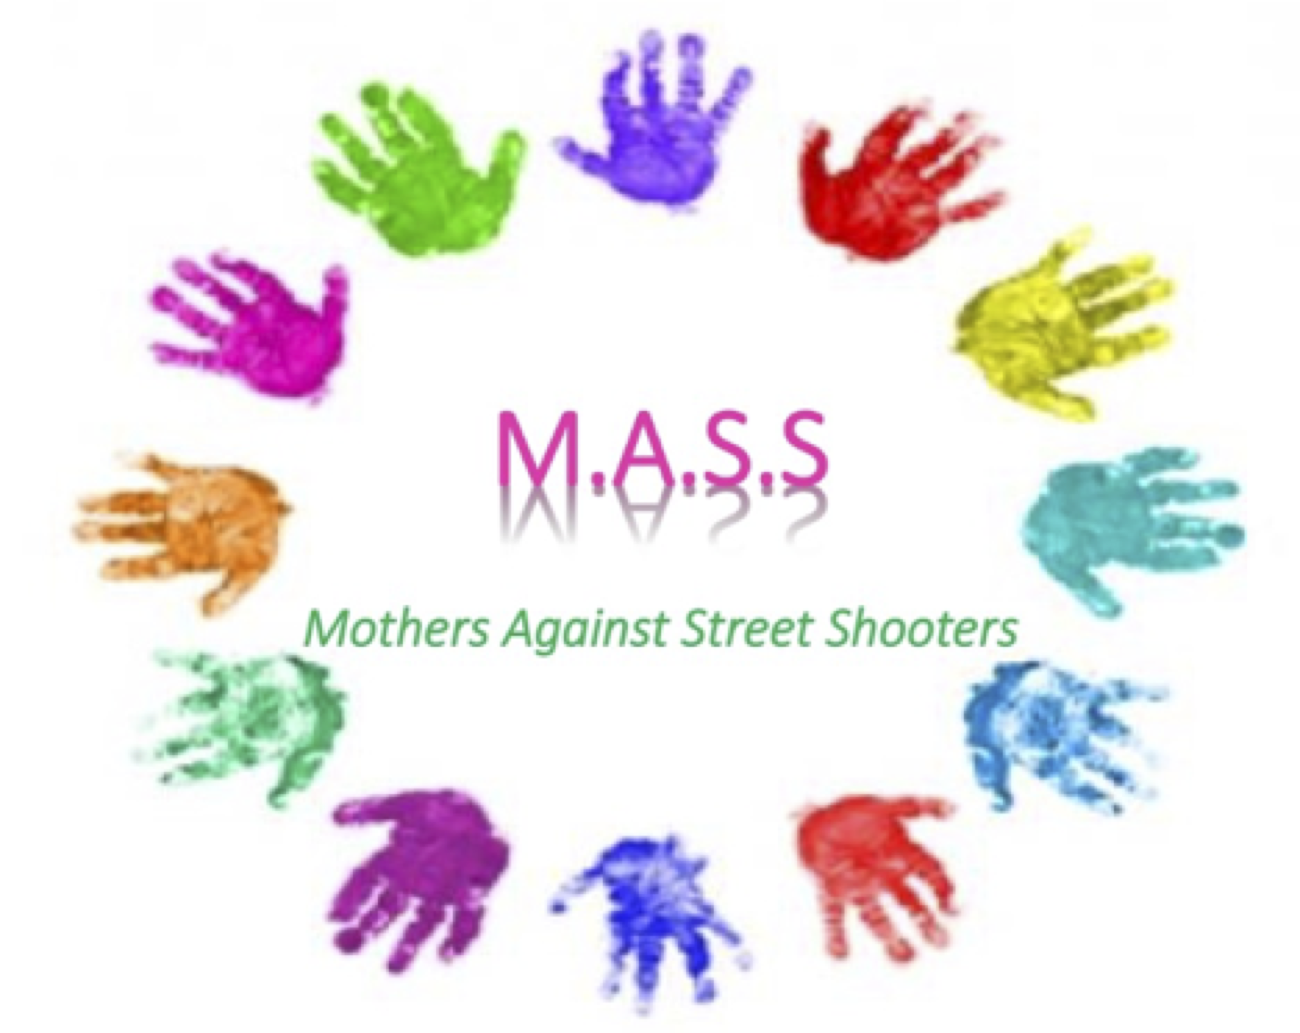 M.A.S.S. (Mothers Against Street Shootings)